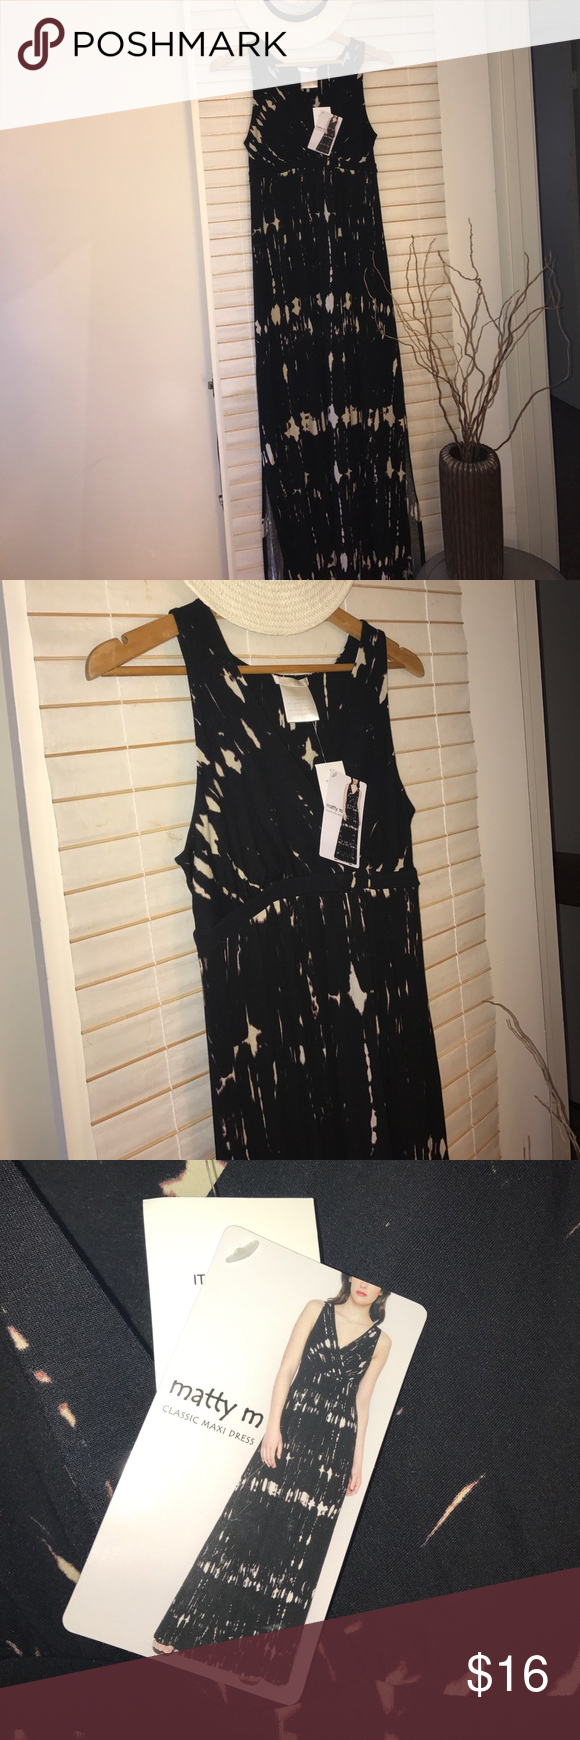 Maxi dress by matty m black sleeveless tiedye print maxi dress